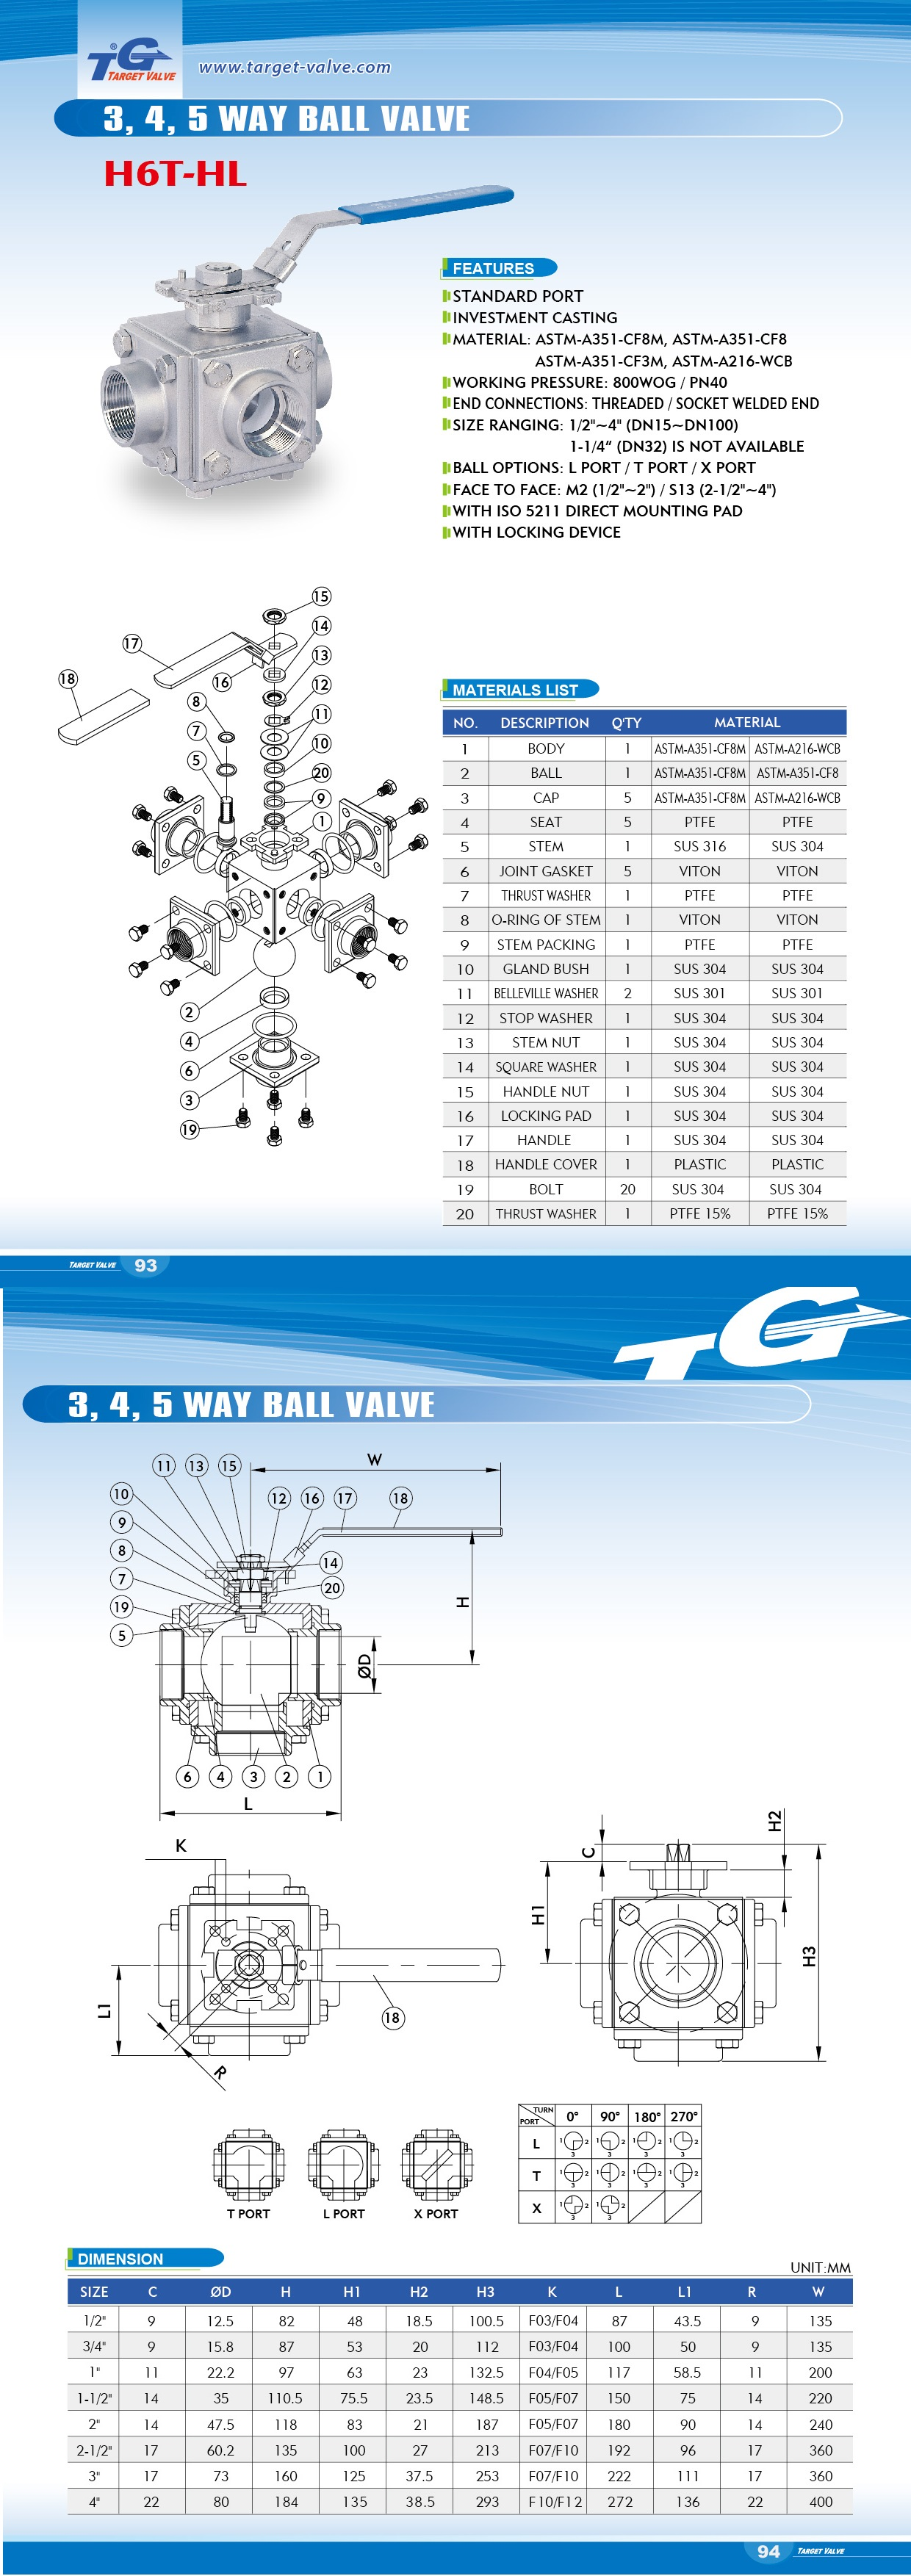 6 PC BALL VALVE - H6T (STANDARD PORT)